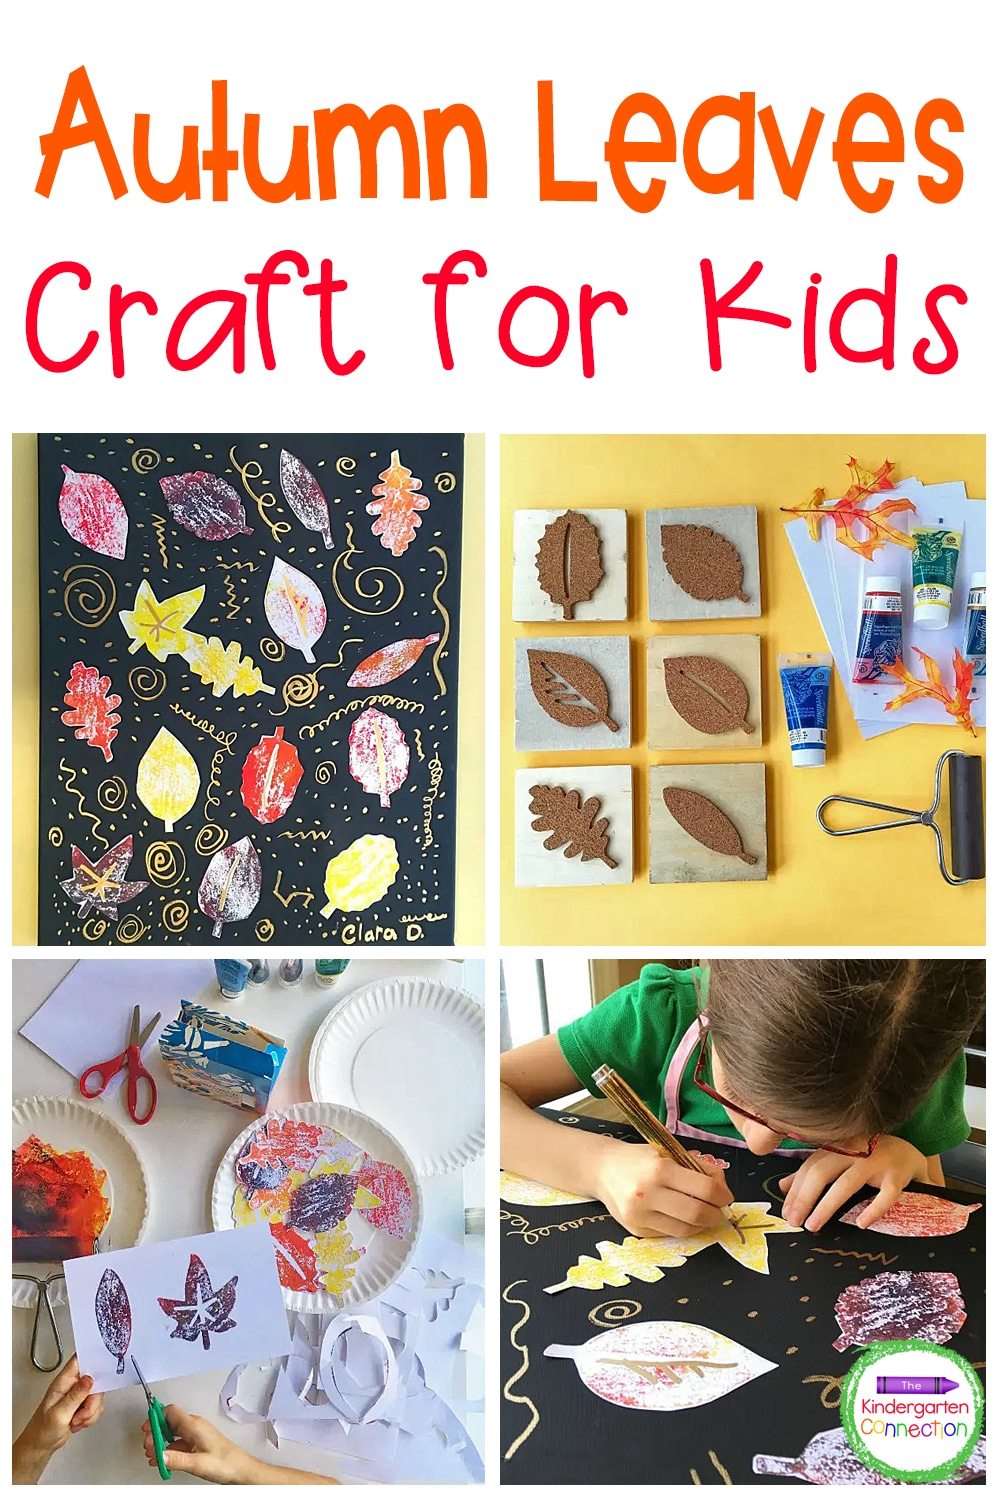 This Autumn Canvas Art is a wonderful project for kids to explore color mixing, stamping, cutting, and pasting to create a beautiful display!